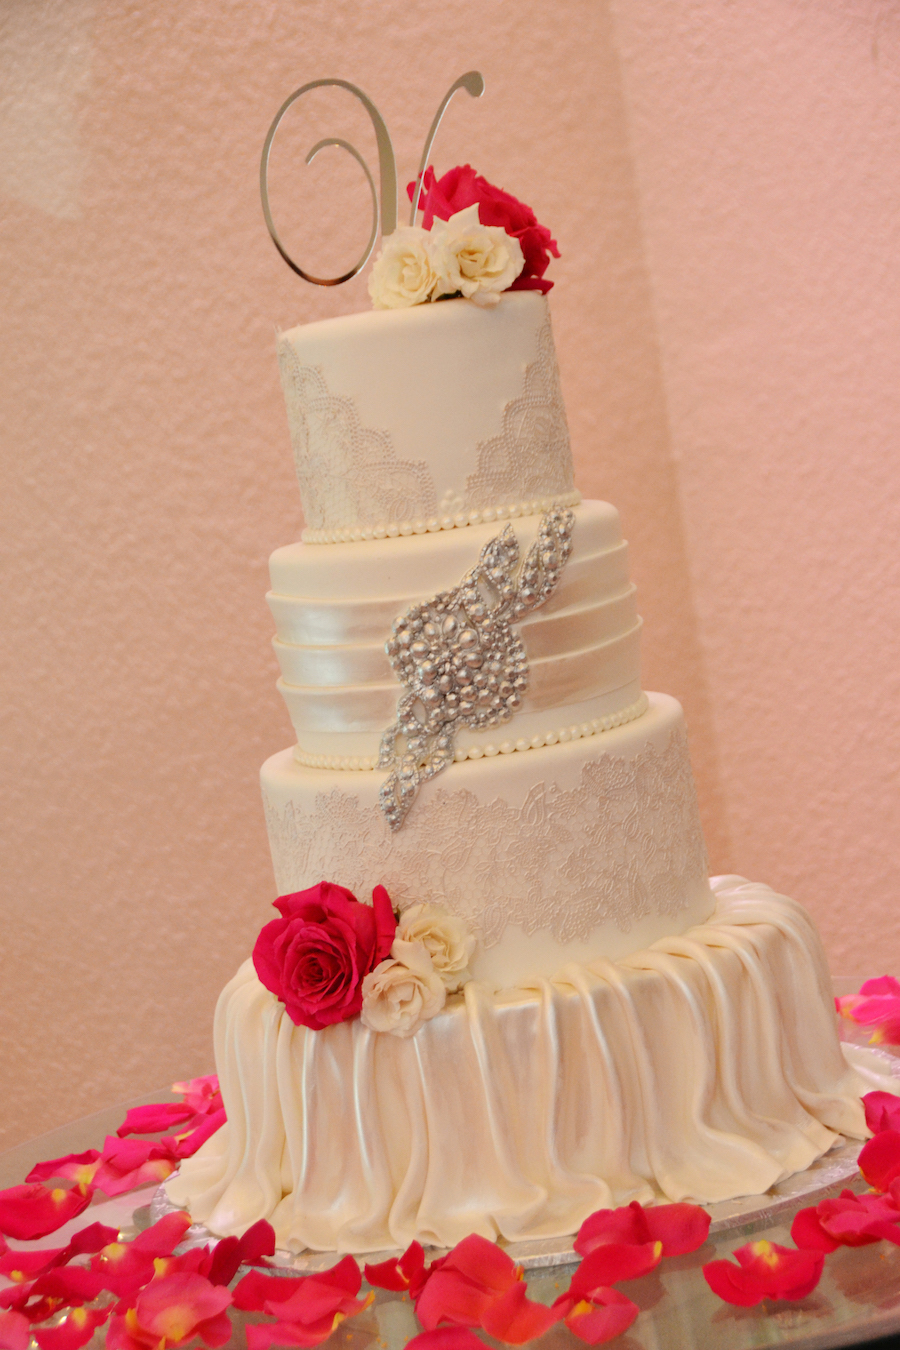 4-Tier White Wedding Cake with Flowers by The Cake Zone | Sarasota Wedding Indoor Reception